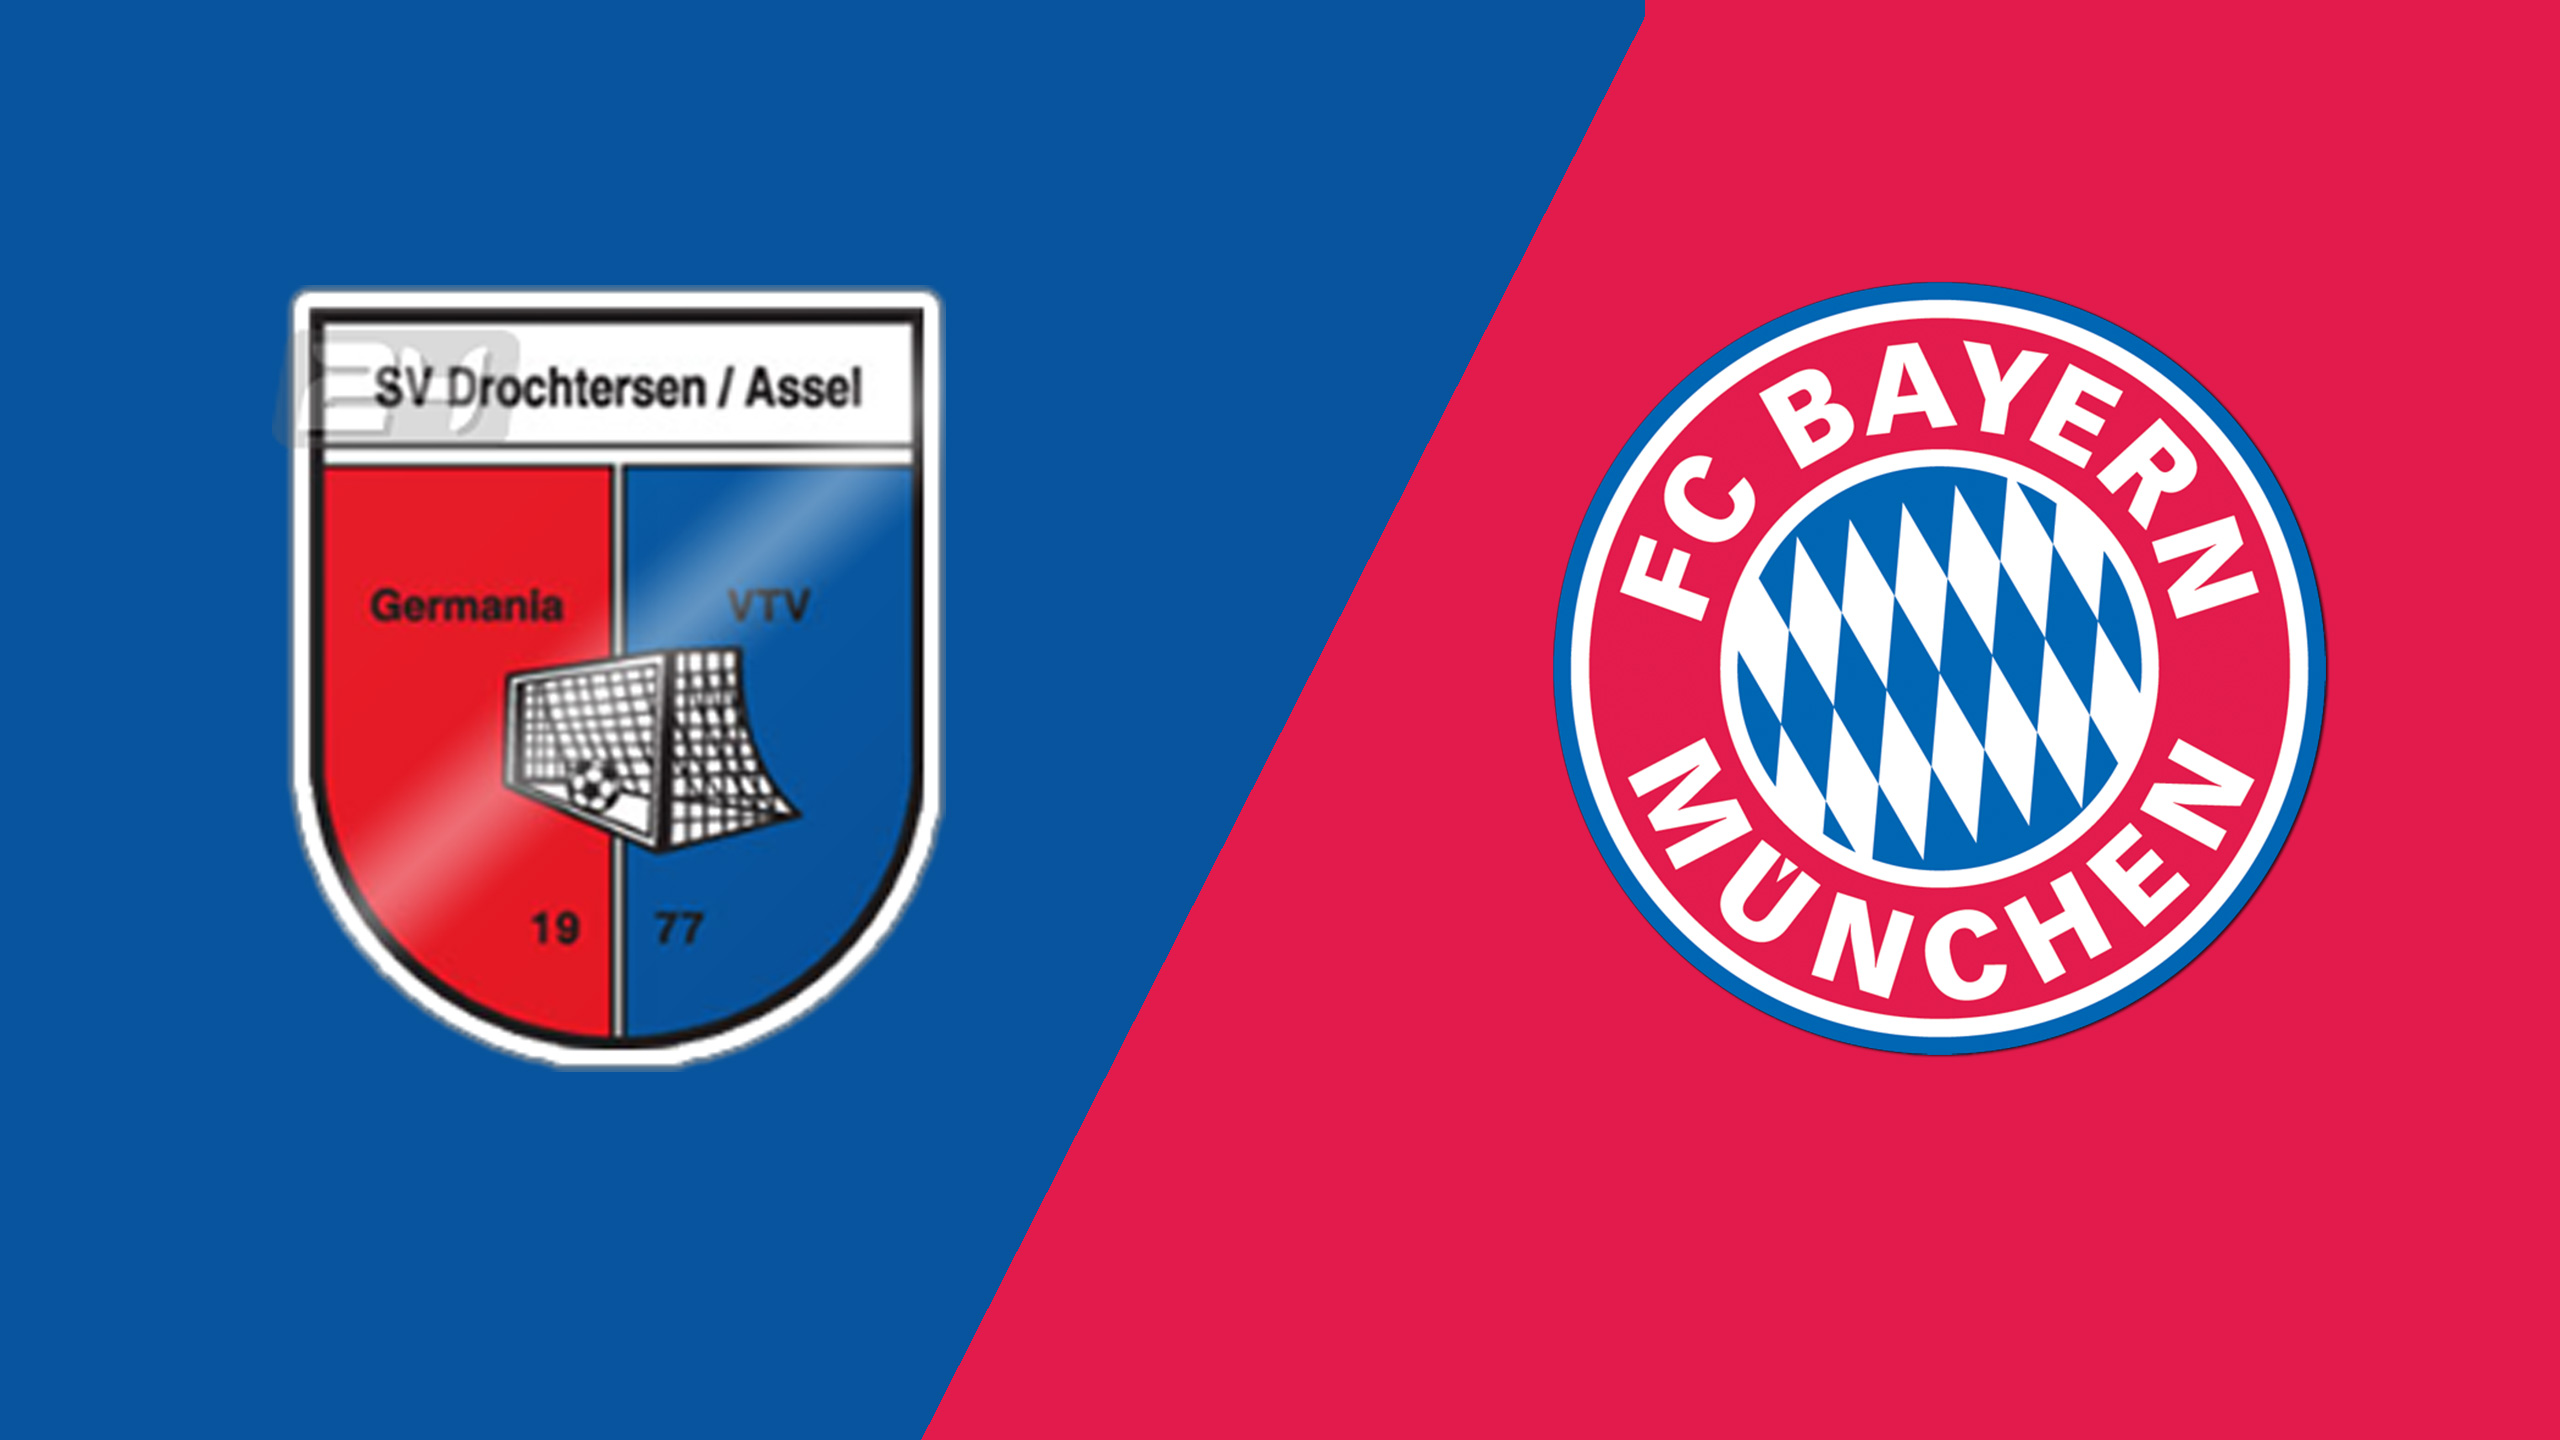 Drochtersen/Assel vs. Bayern Munich (Round 1) (German Cup)